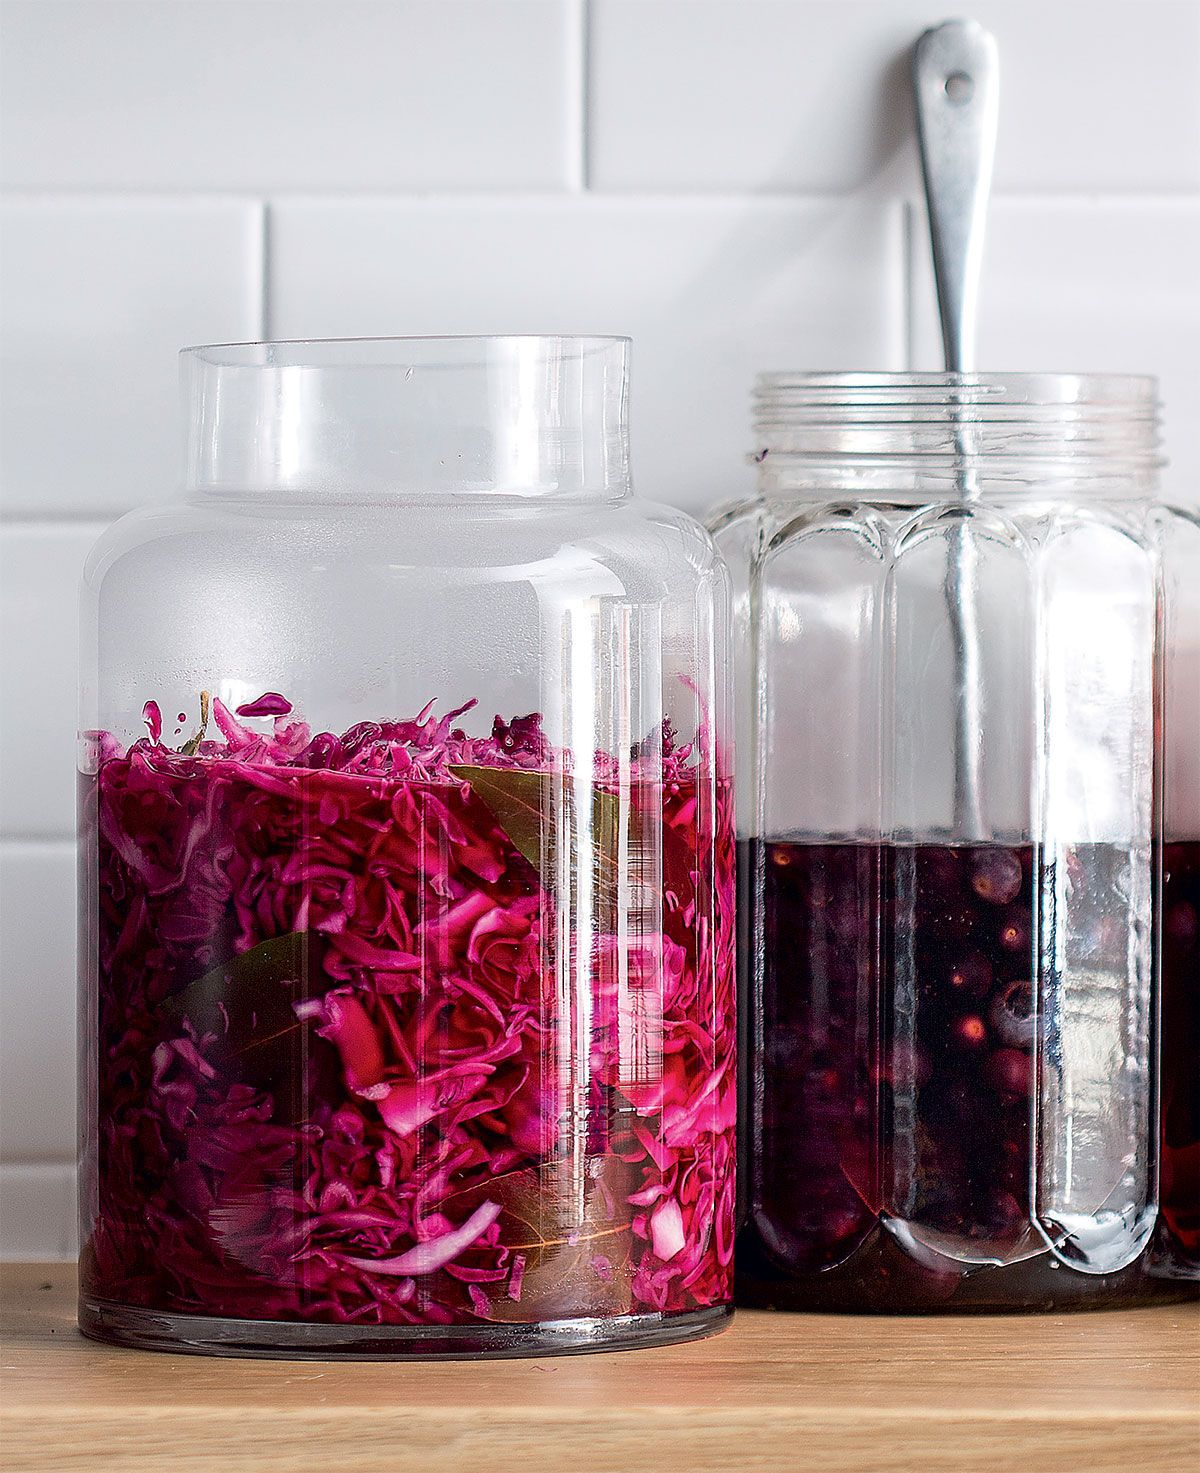 Red Cabbage Pickle Woolworths Taste Recipe Pickles Red Cabbage Cabbage